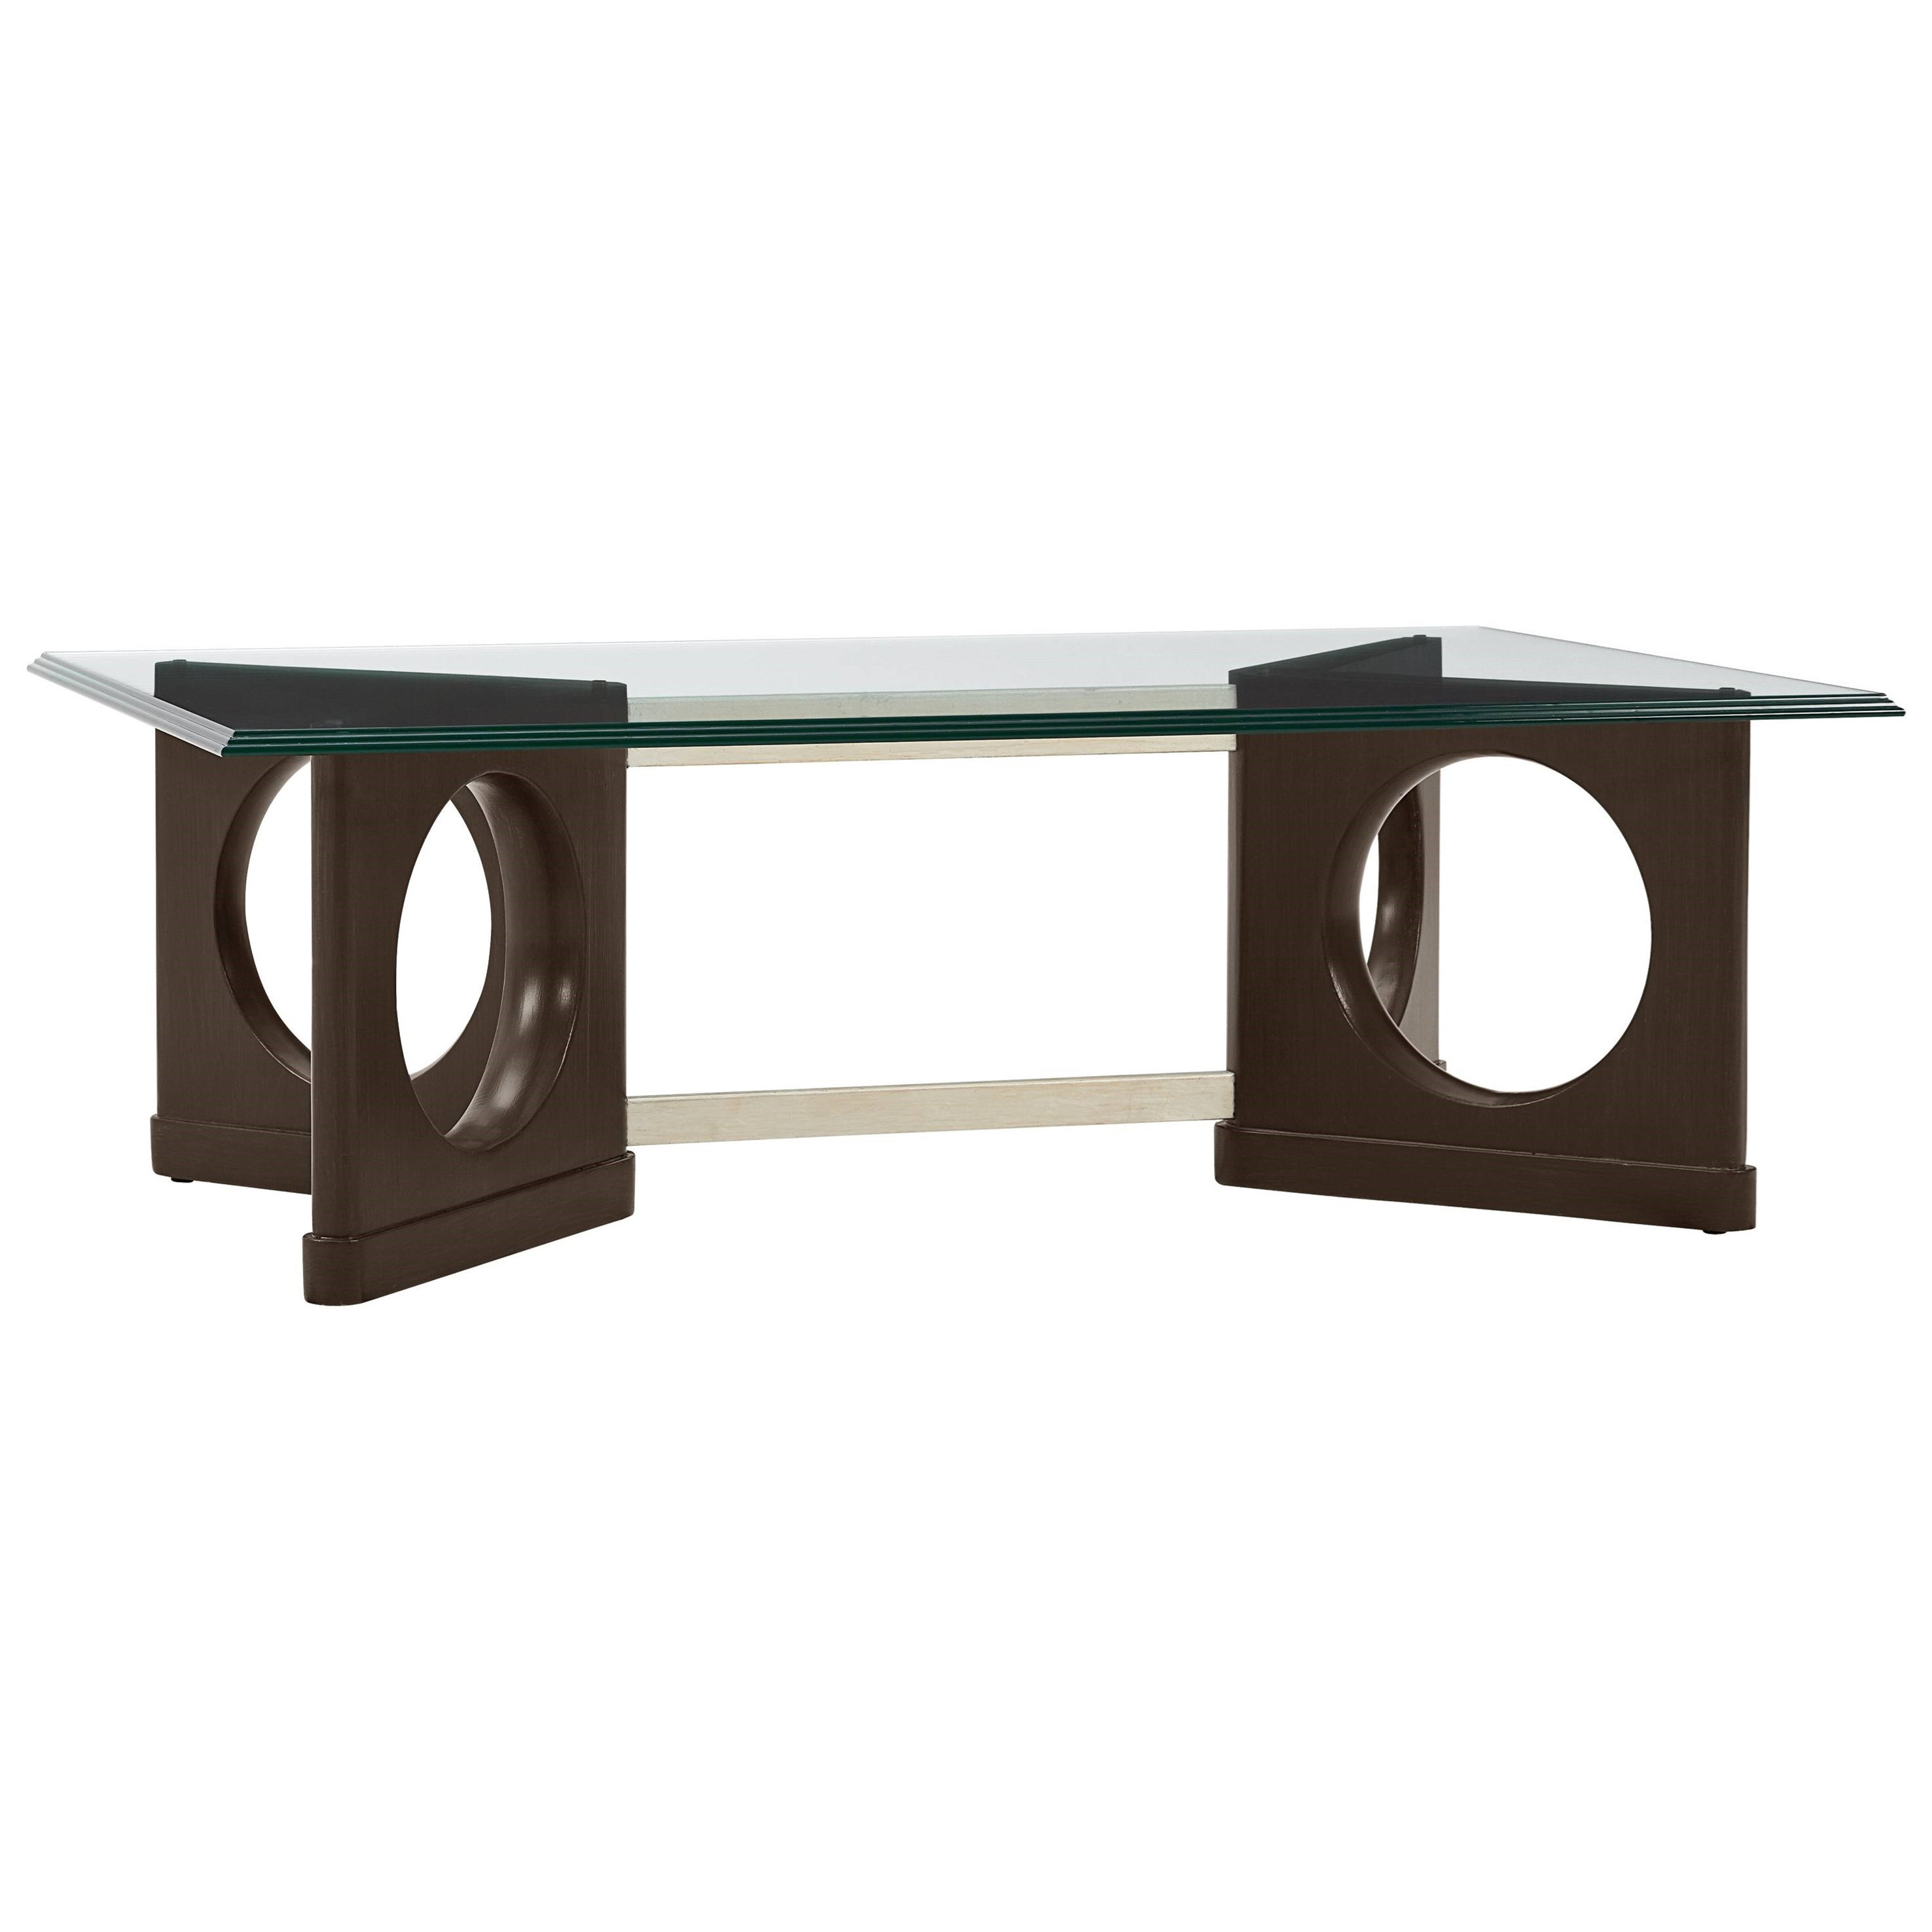 Stanley furniture virage 696 85 01 cocktail table with for Transmutation table 85 items